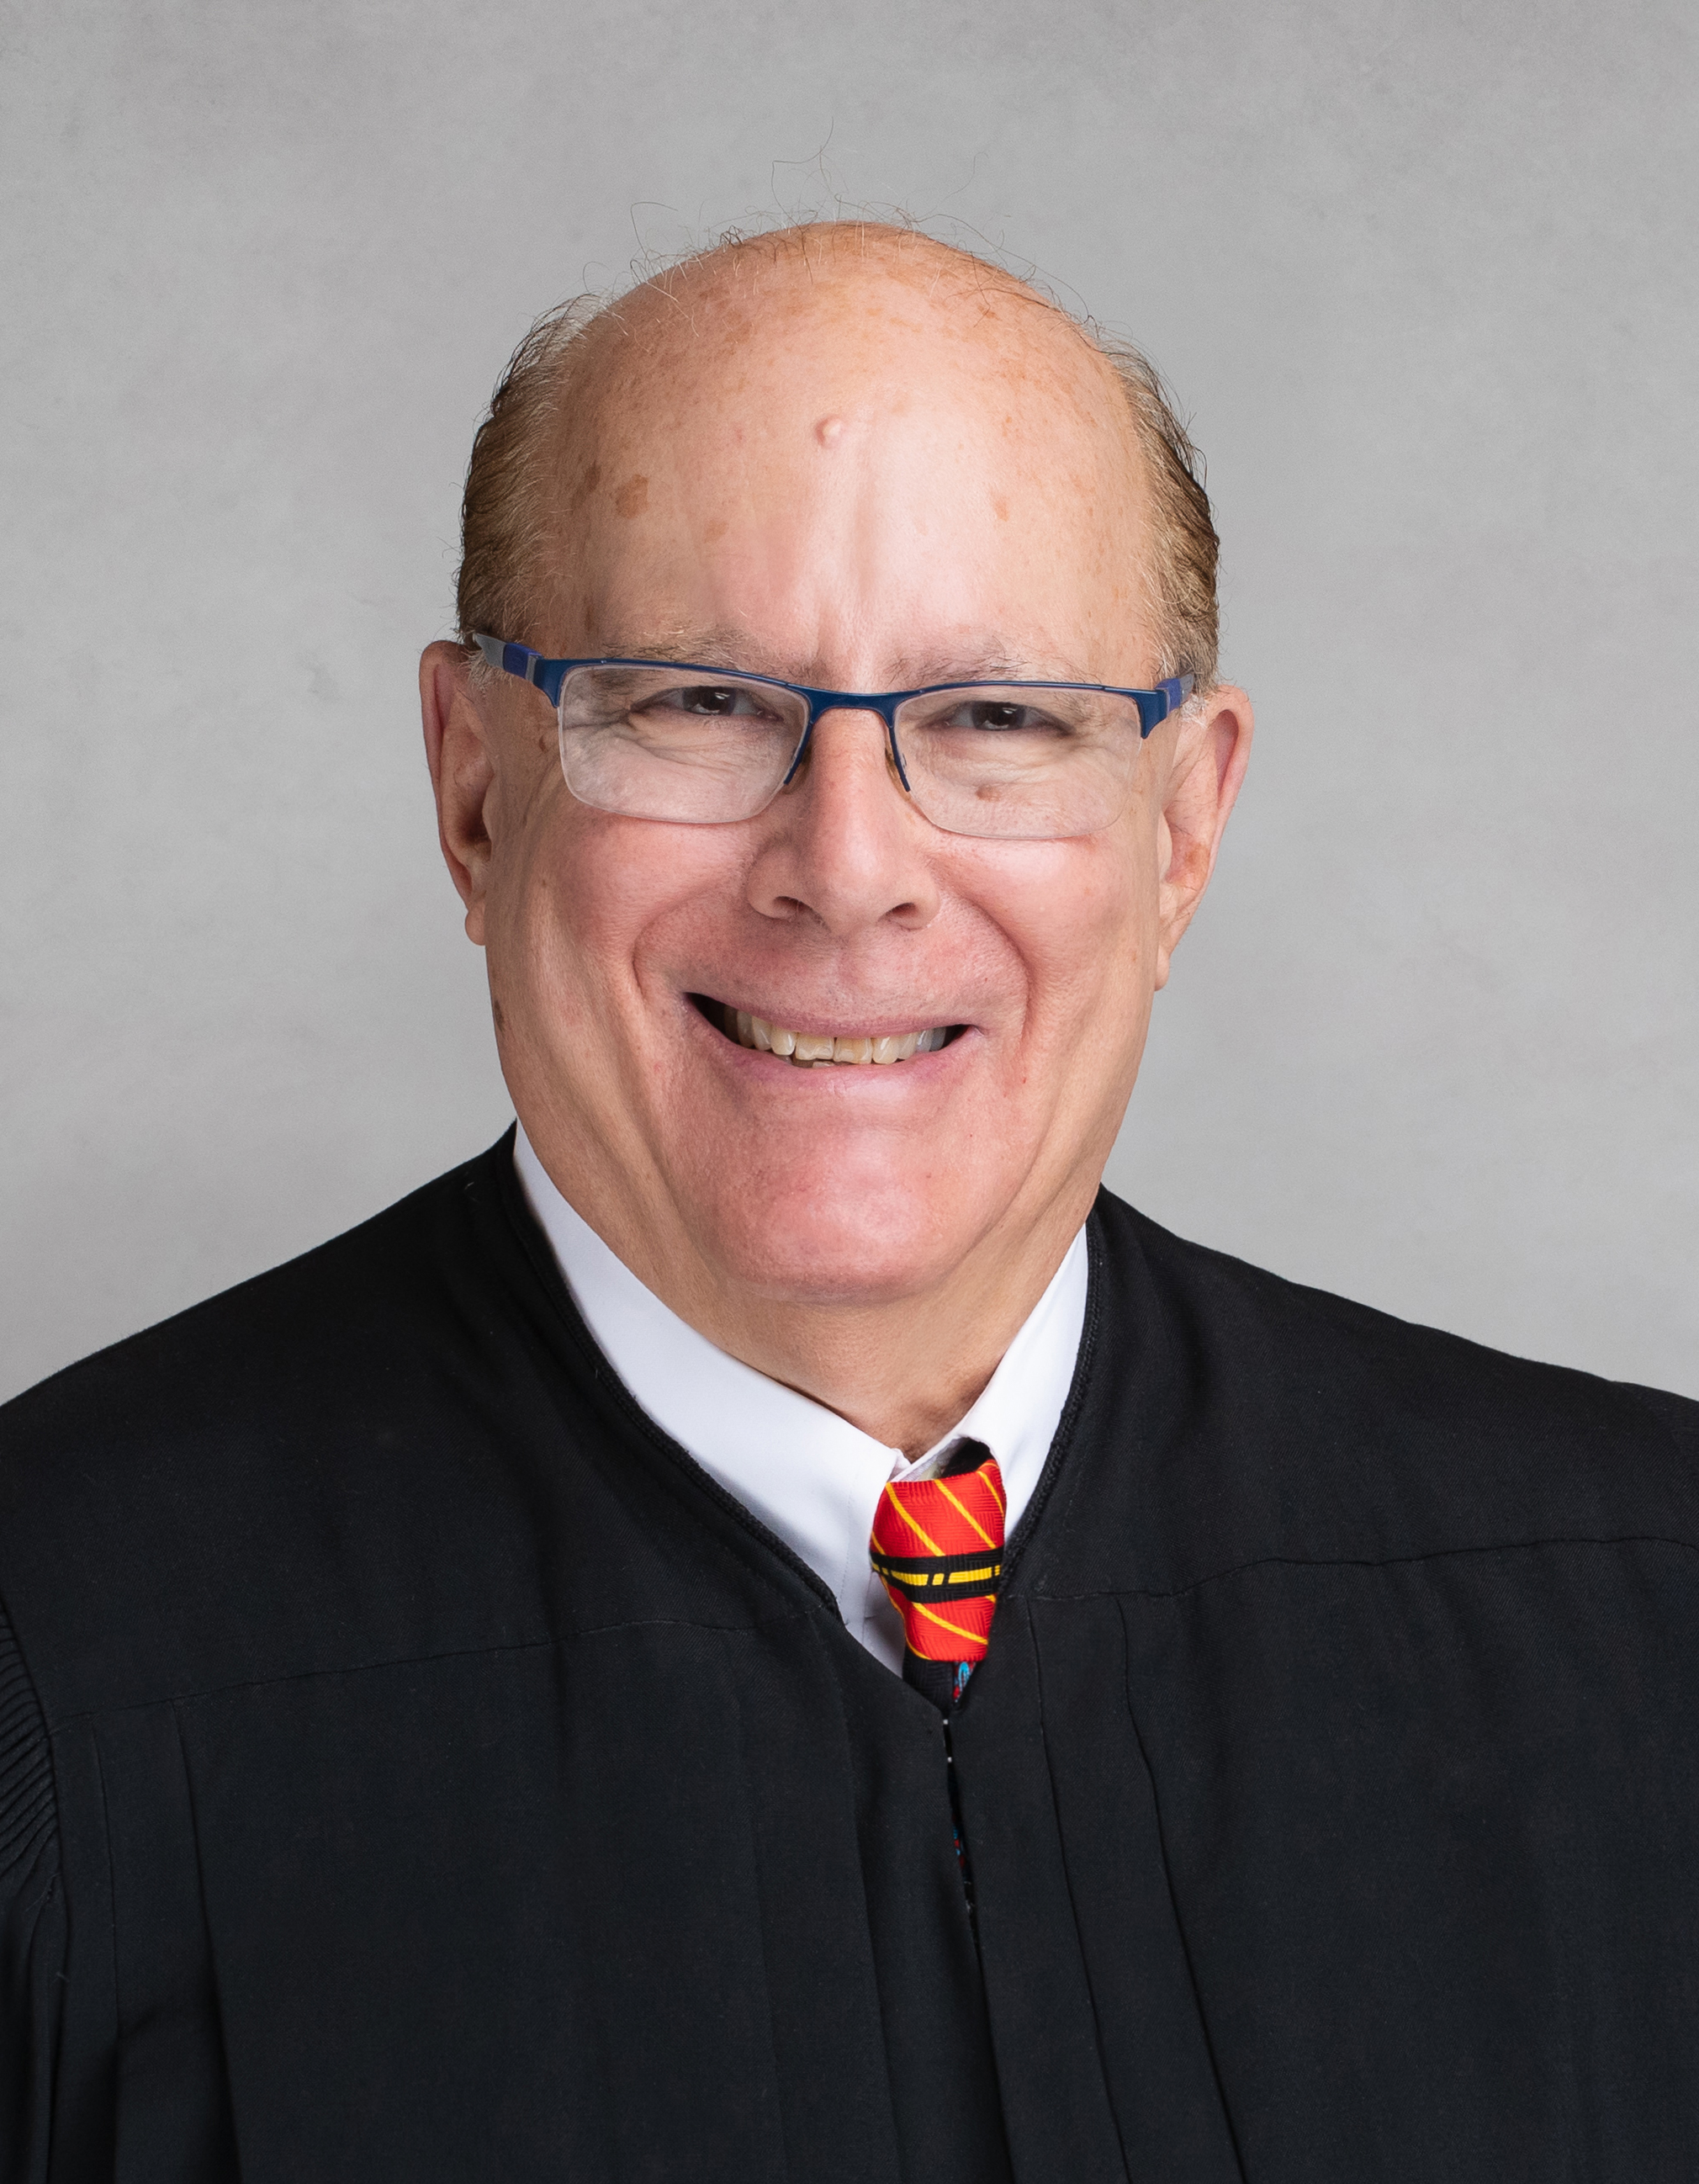 Judge James M. Alexander